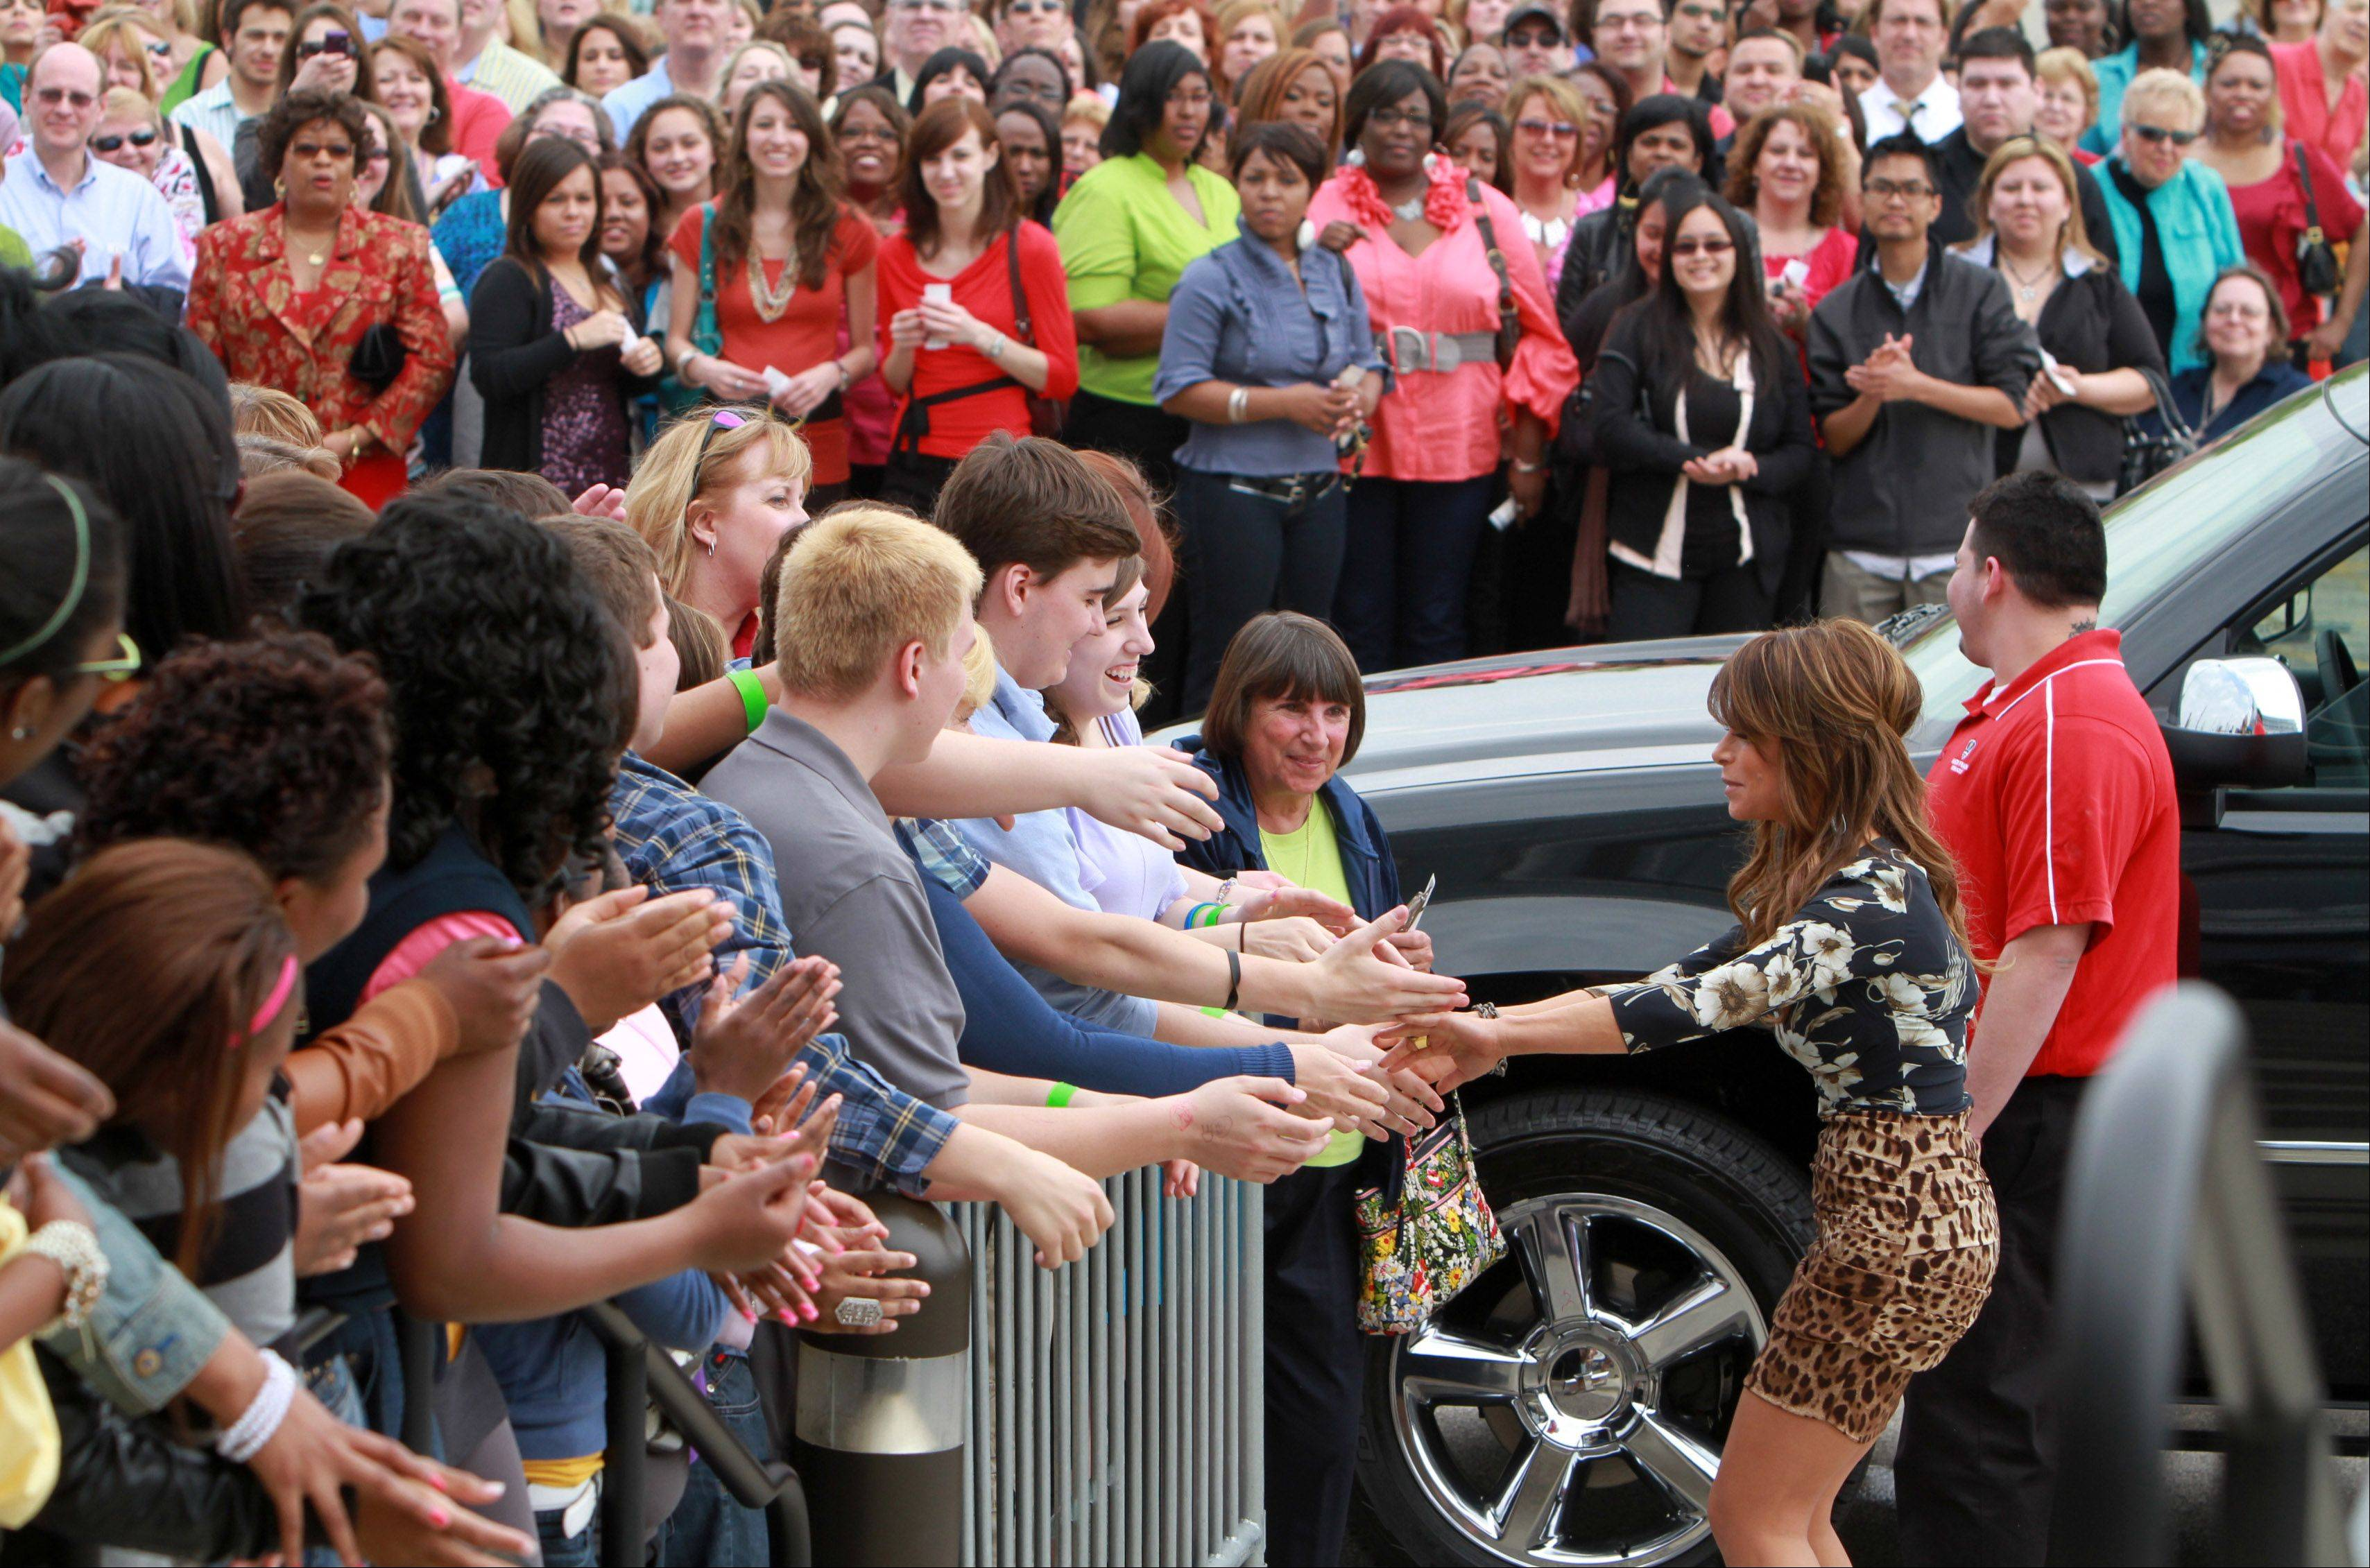 Paula Abdul arrives at the Sears Centre for taping of the judges round for The X Factor in Hoffman Estates on Thursday, May 19th.